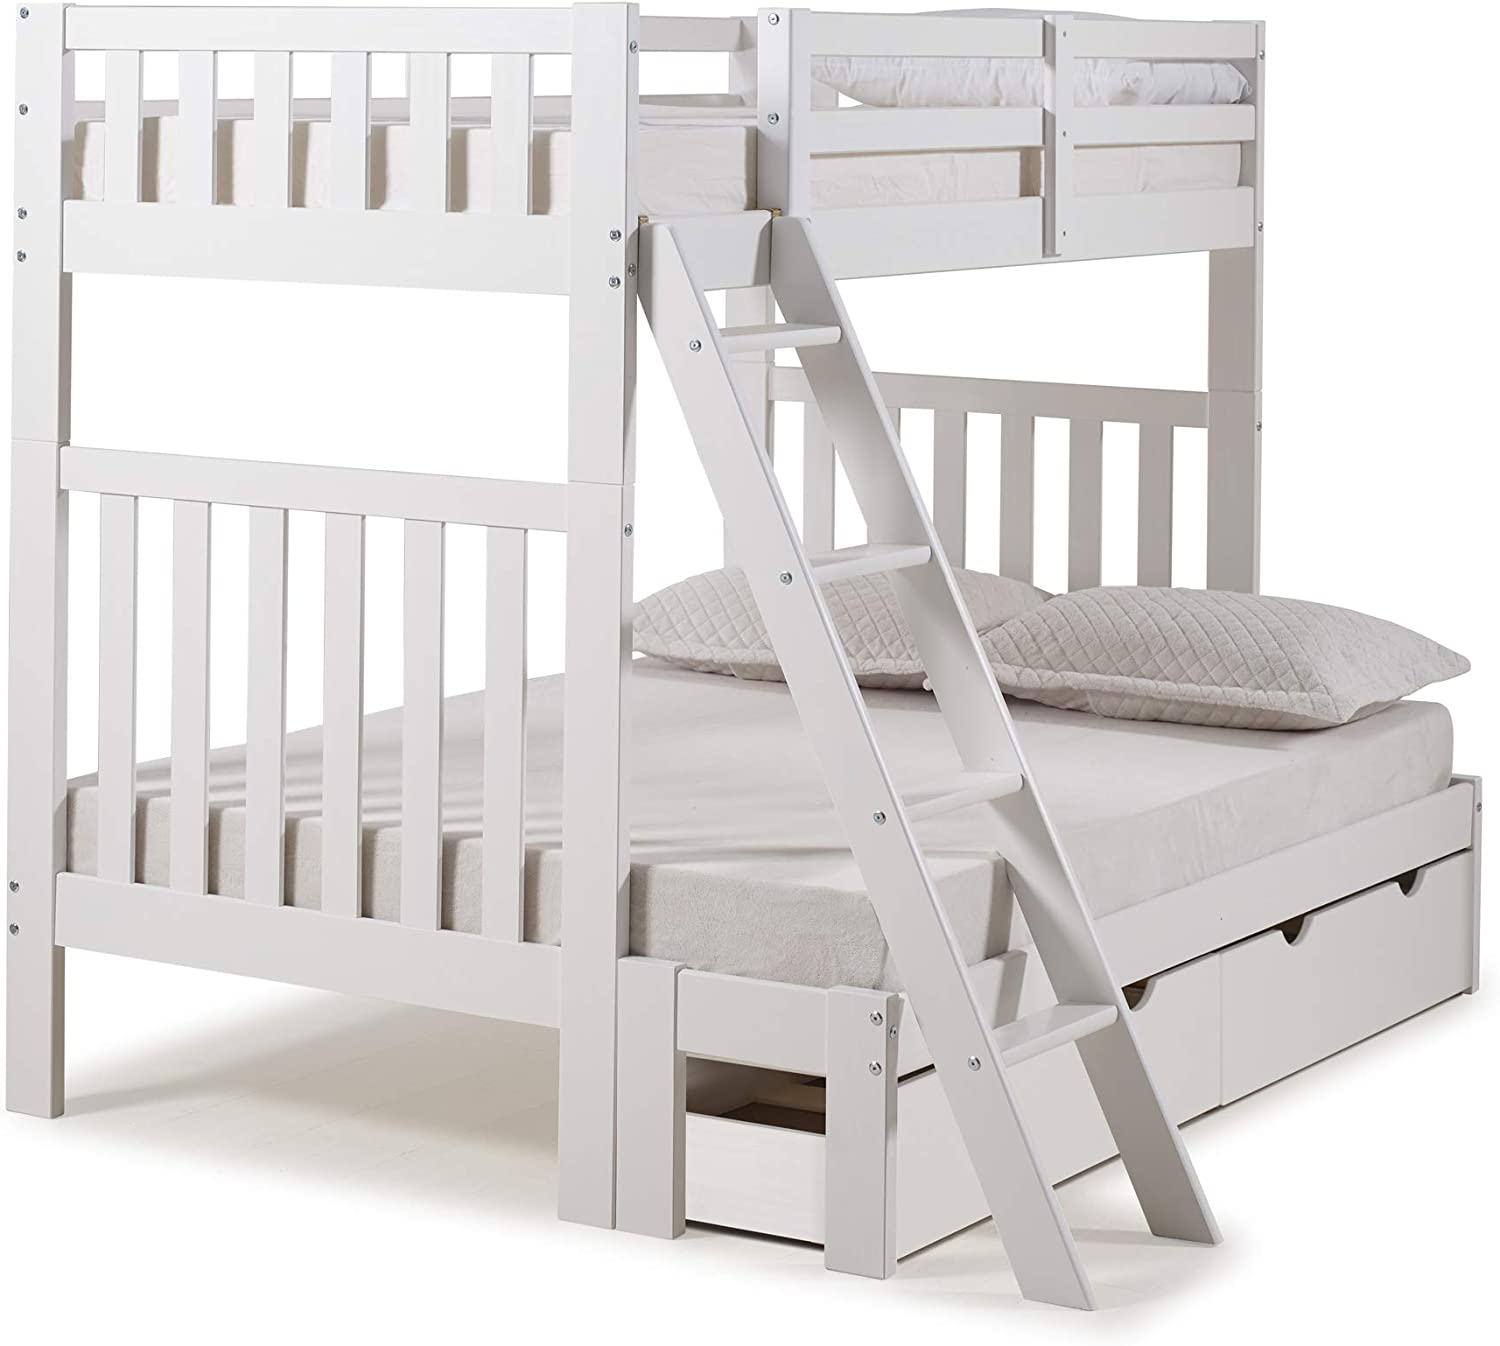 Alaterre Furniture Aurora Twin Over Full Wood Bed with Storage Drawers, White Bunk